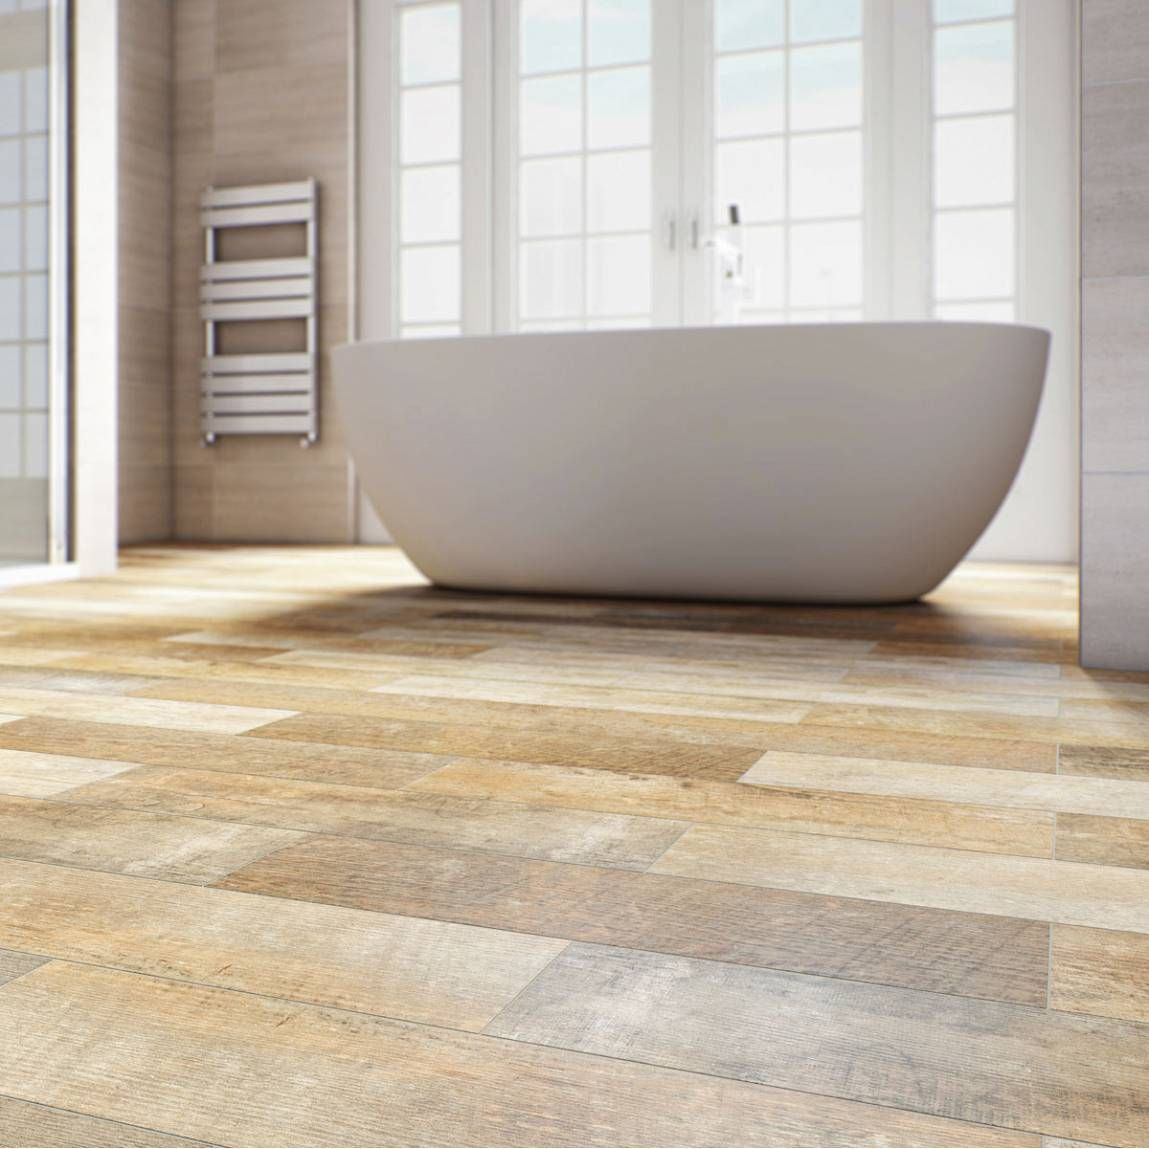 Fuse a contemporary style statement bath with upscaled wood style ...